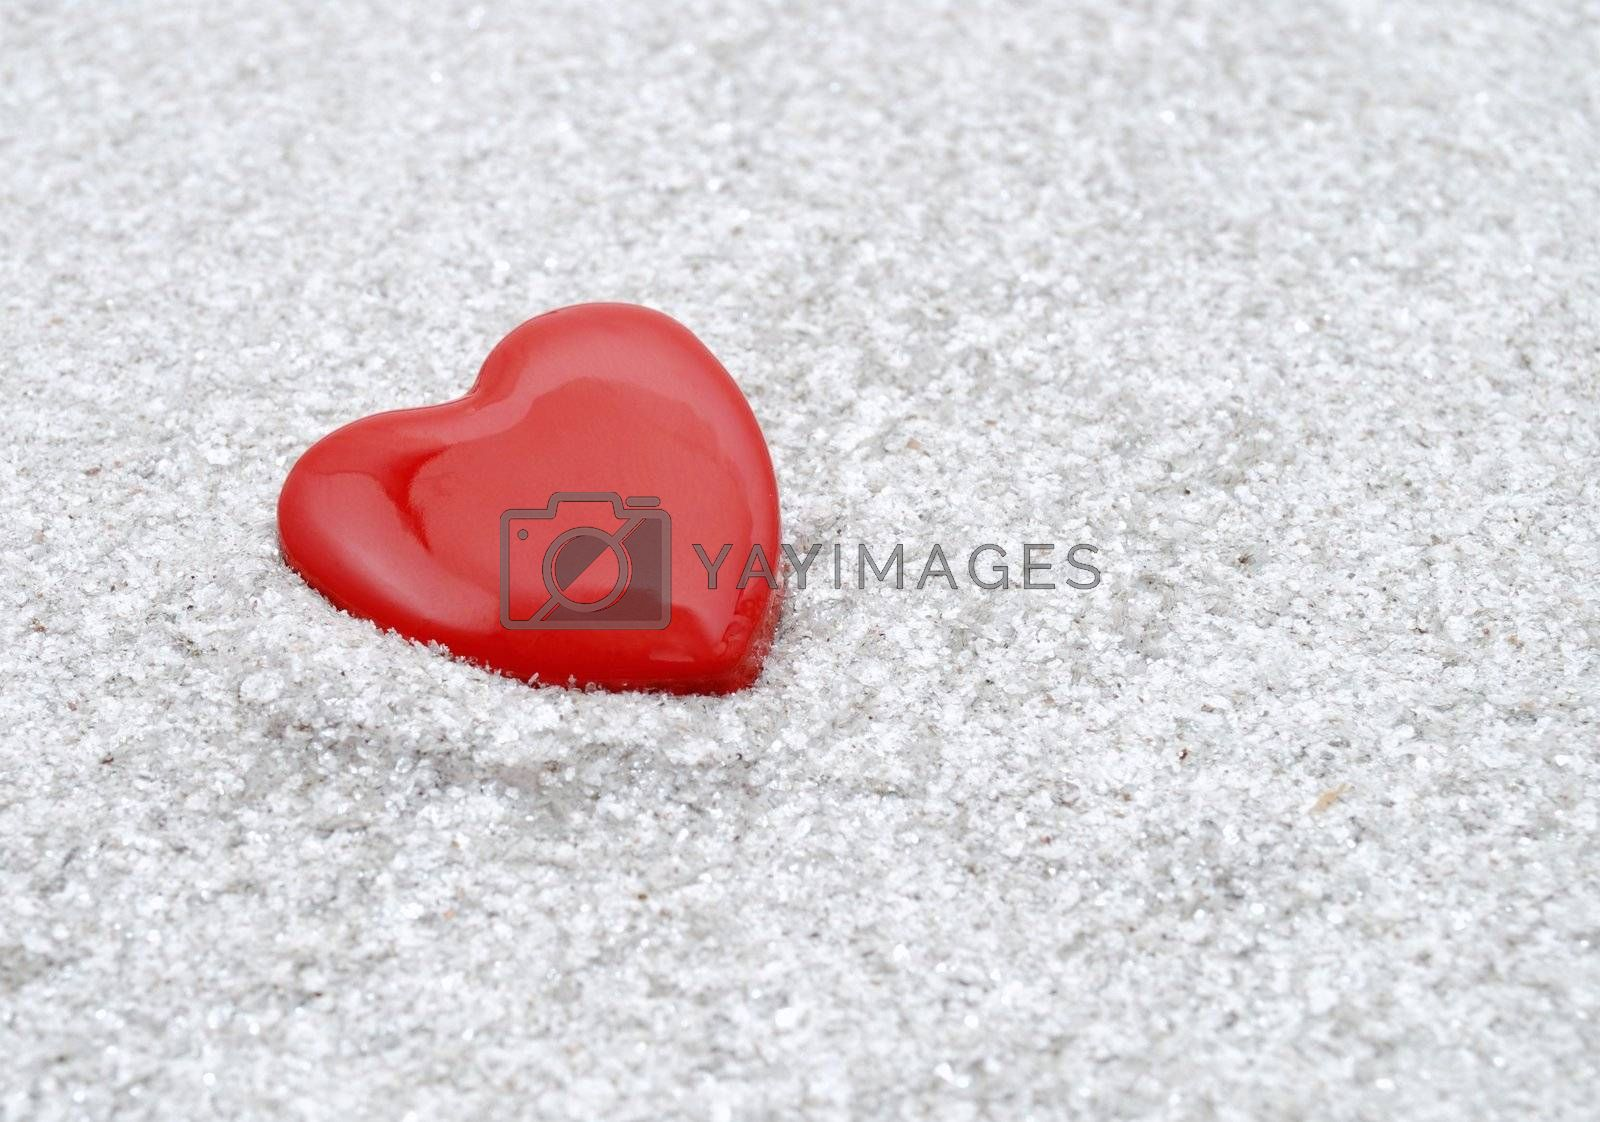 Lonely red heart fallen in grey ashes